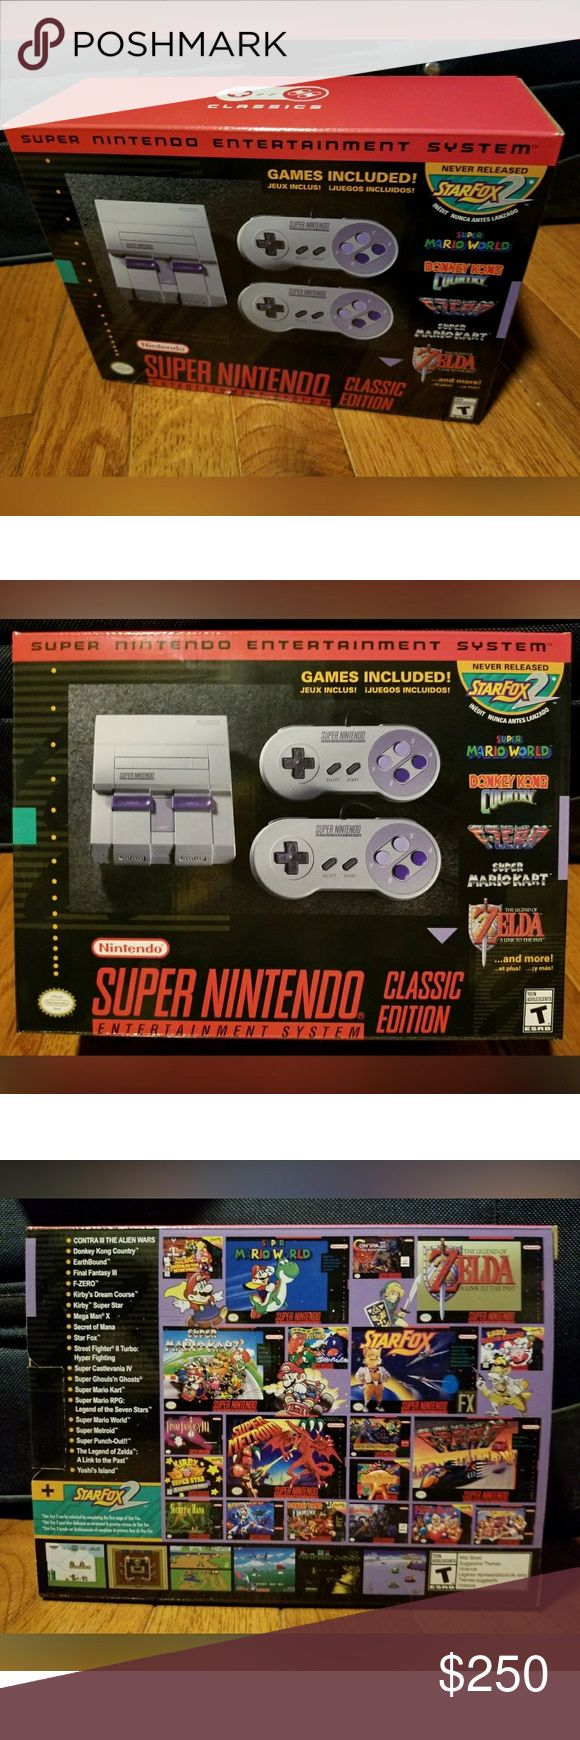 SNES Classic New and never played! Perfect holiday gift!  Included in box:  - Miniature Super Nintendo Entertainment System replica with 21 pre-loaded Super NES games  - Two wired Super NES Classic Controllers  - One HDMI cable  - One USB cable with AC adapter  - Operations manual (with a poster on the back!) Nintendo Accessories